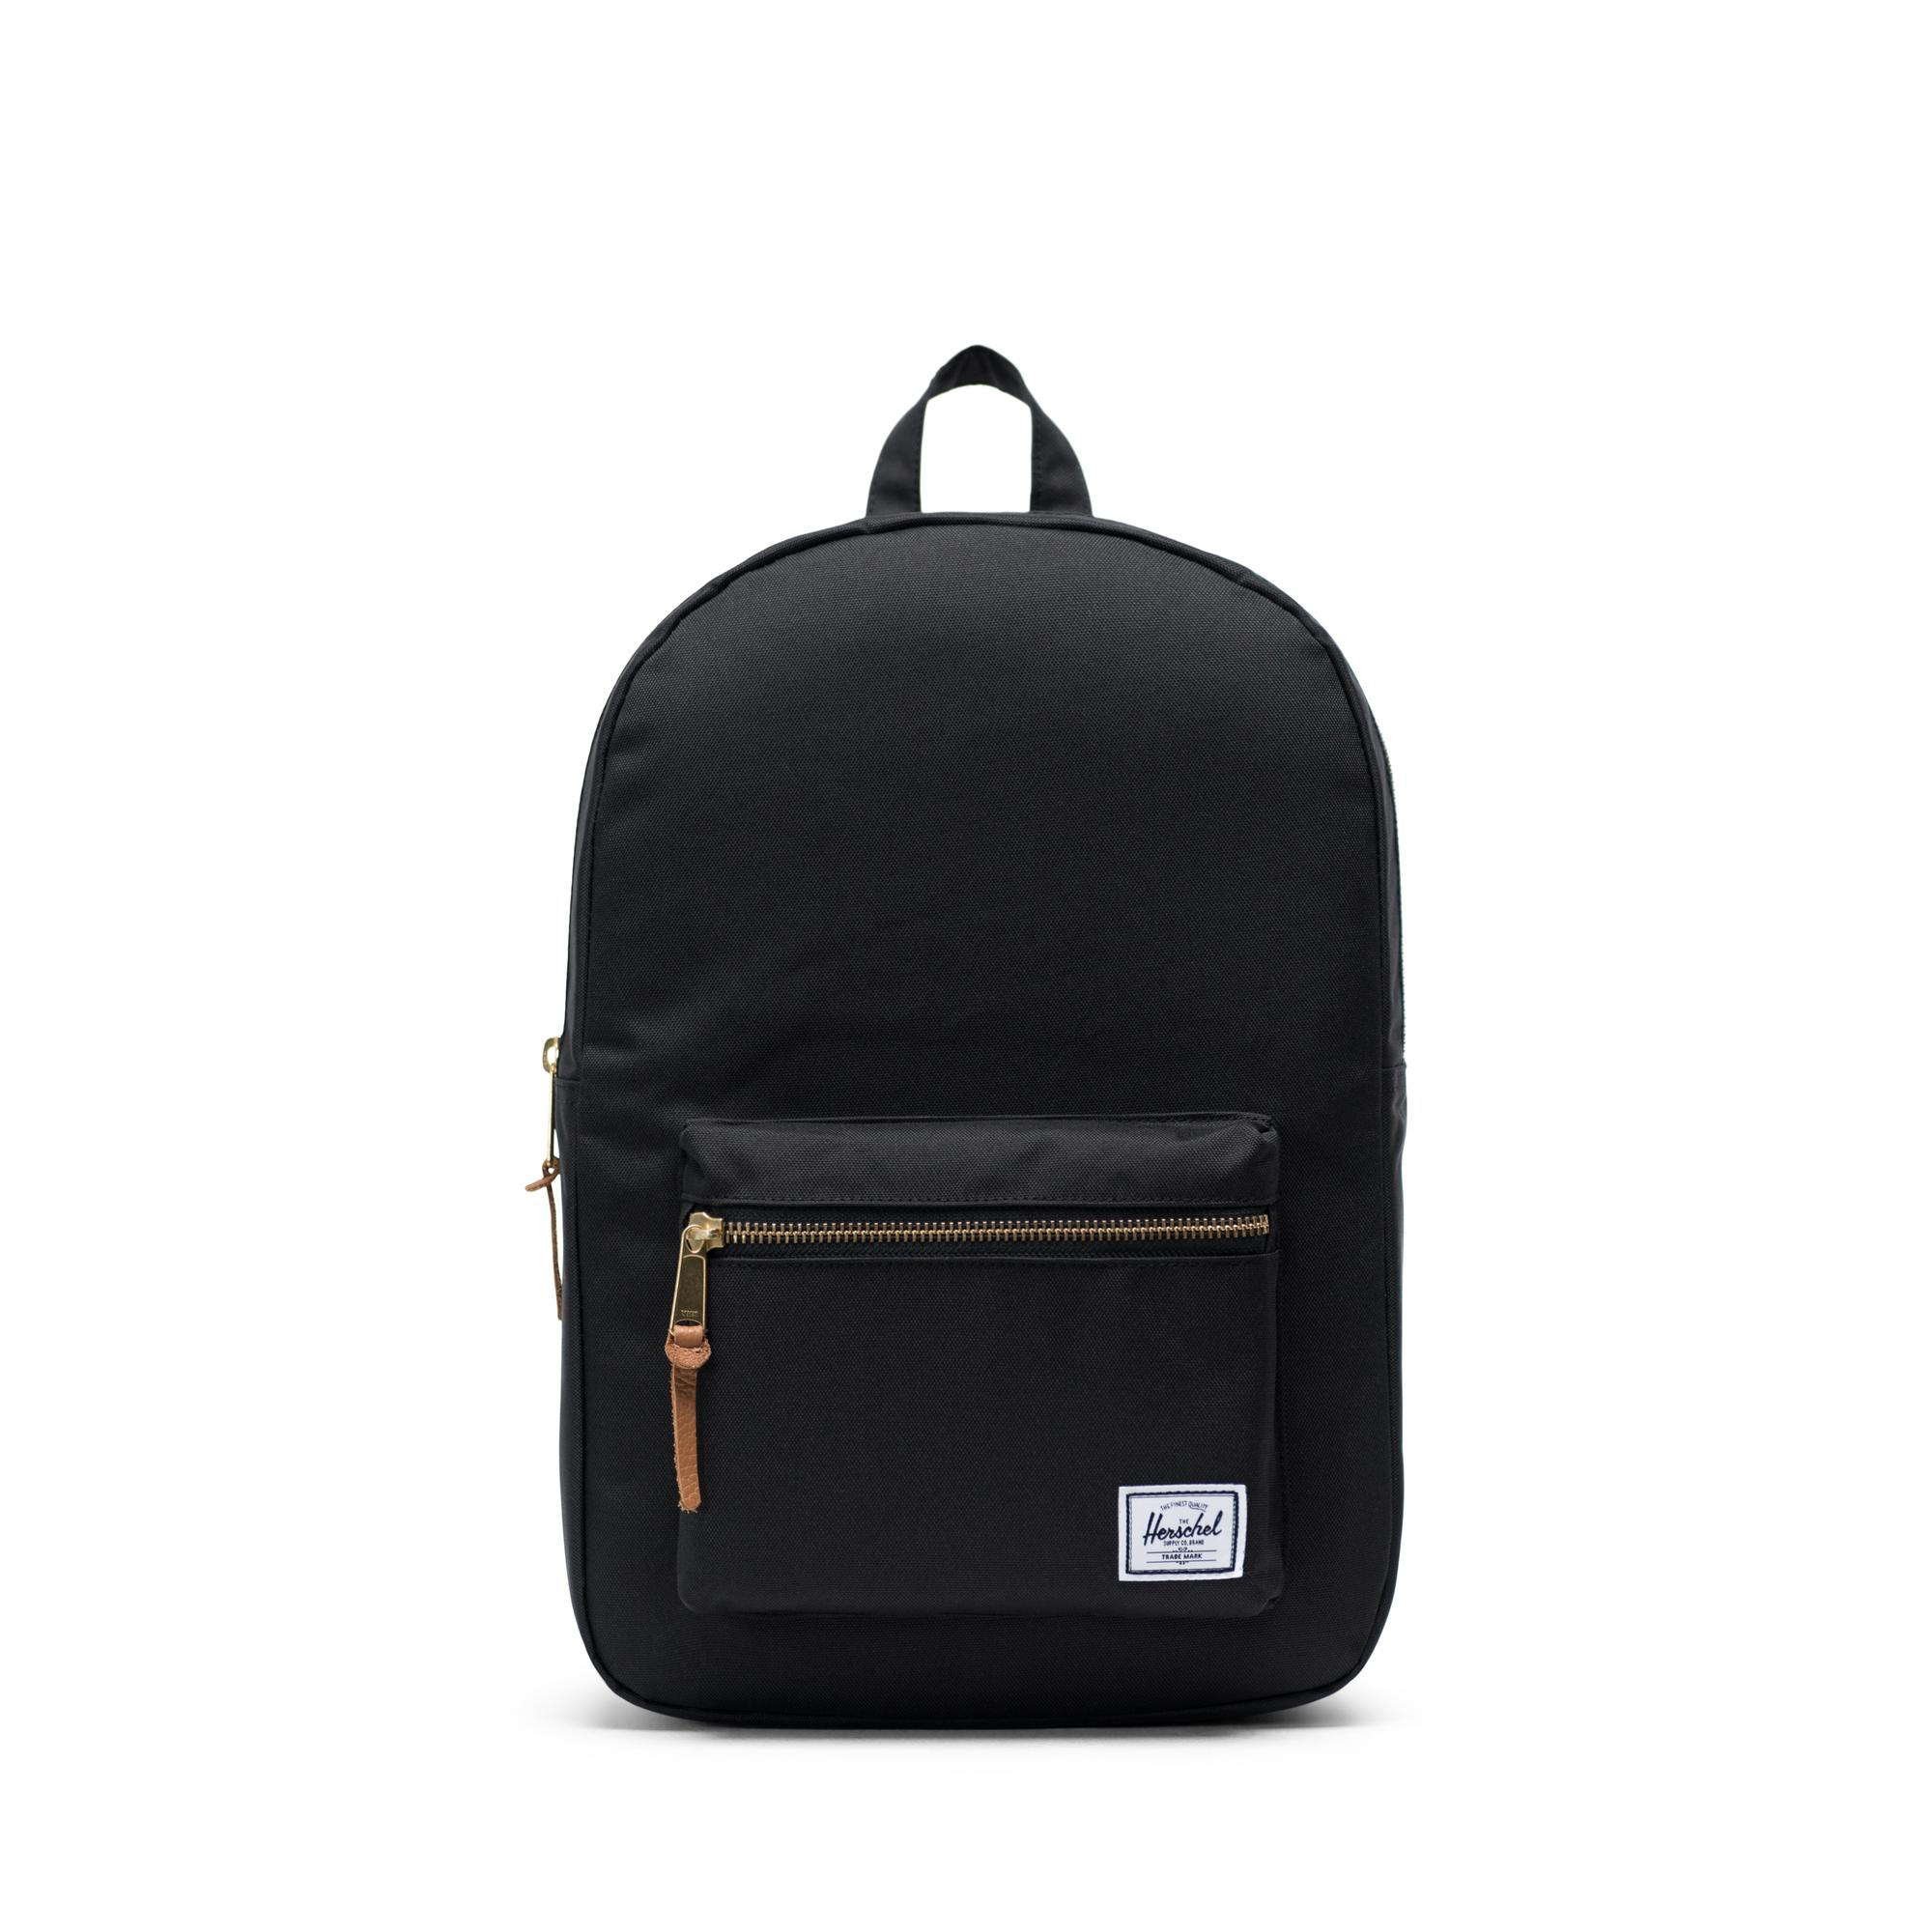 Settlement Backpack Mid-Volume   Herschel Supply Company 4cba6f7b8e